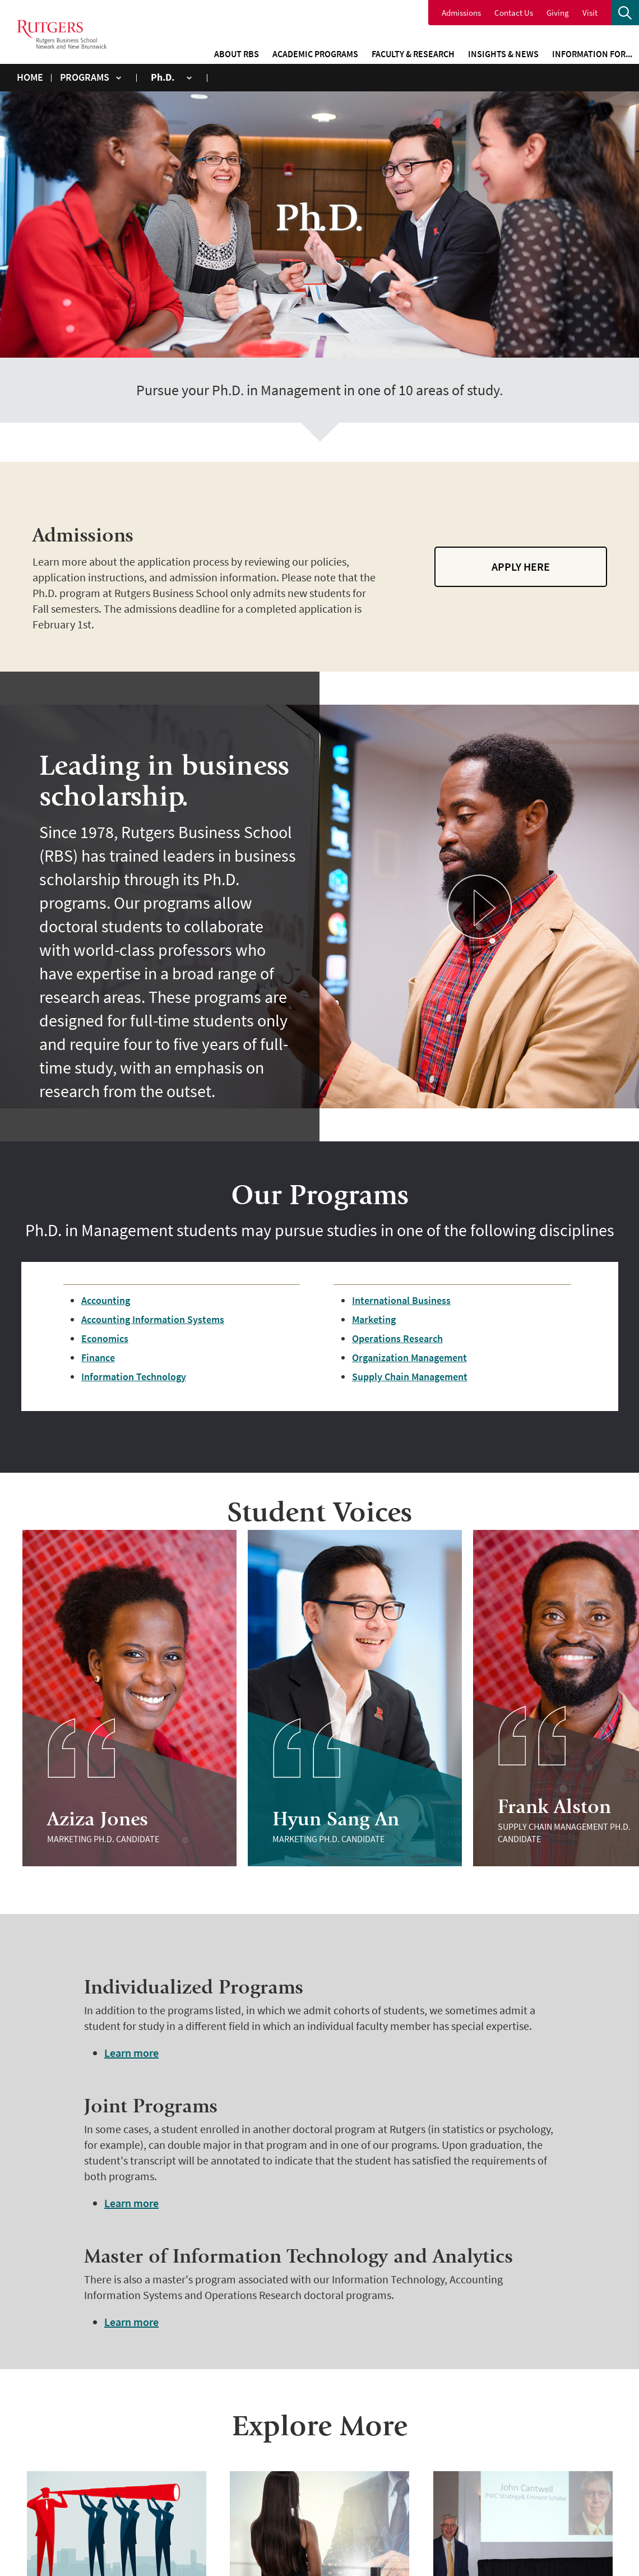 Rutgers-The State University Rutgers Business School Graduate Programs: Newark and New Brunswick PhD, Management